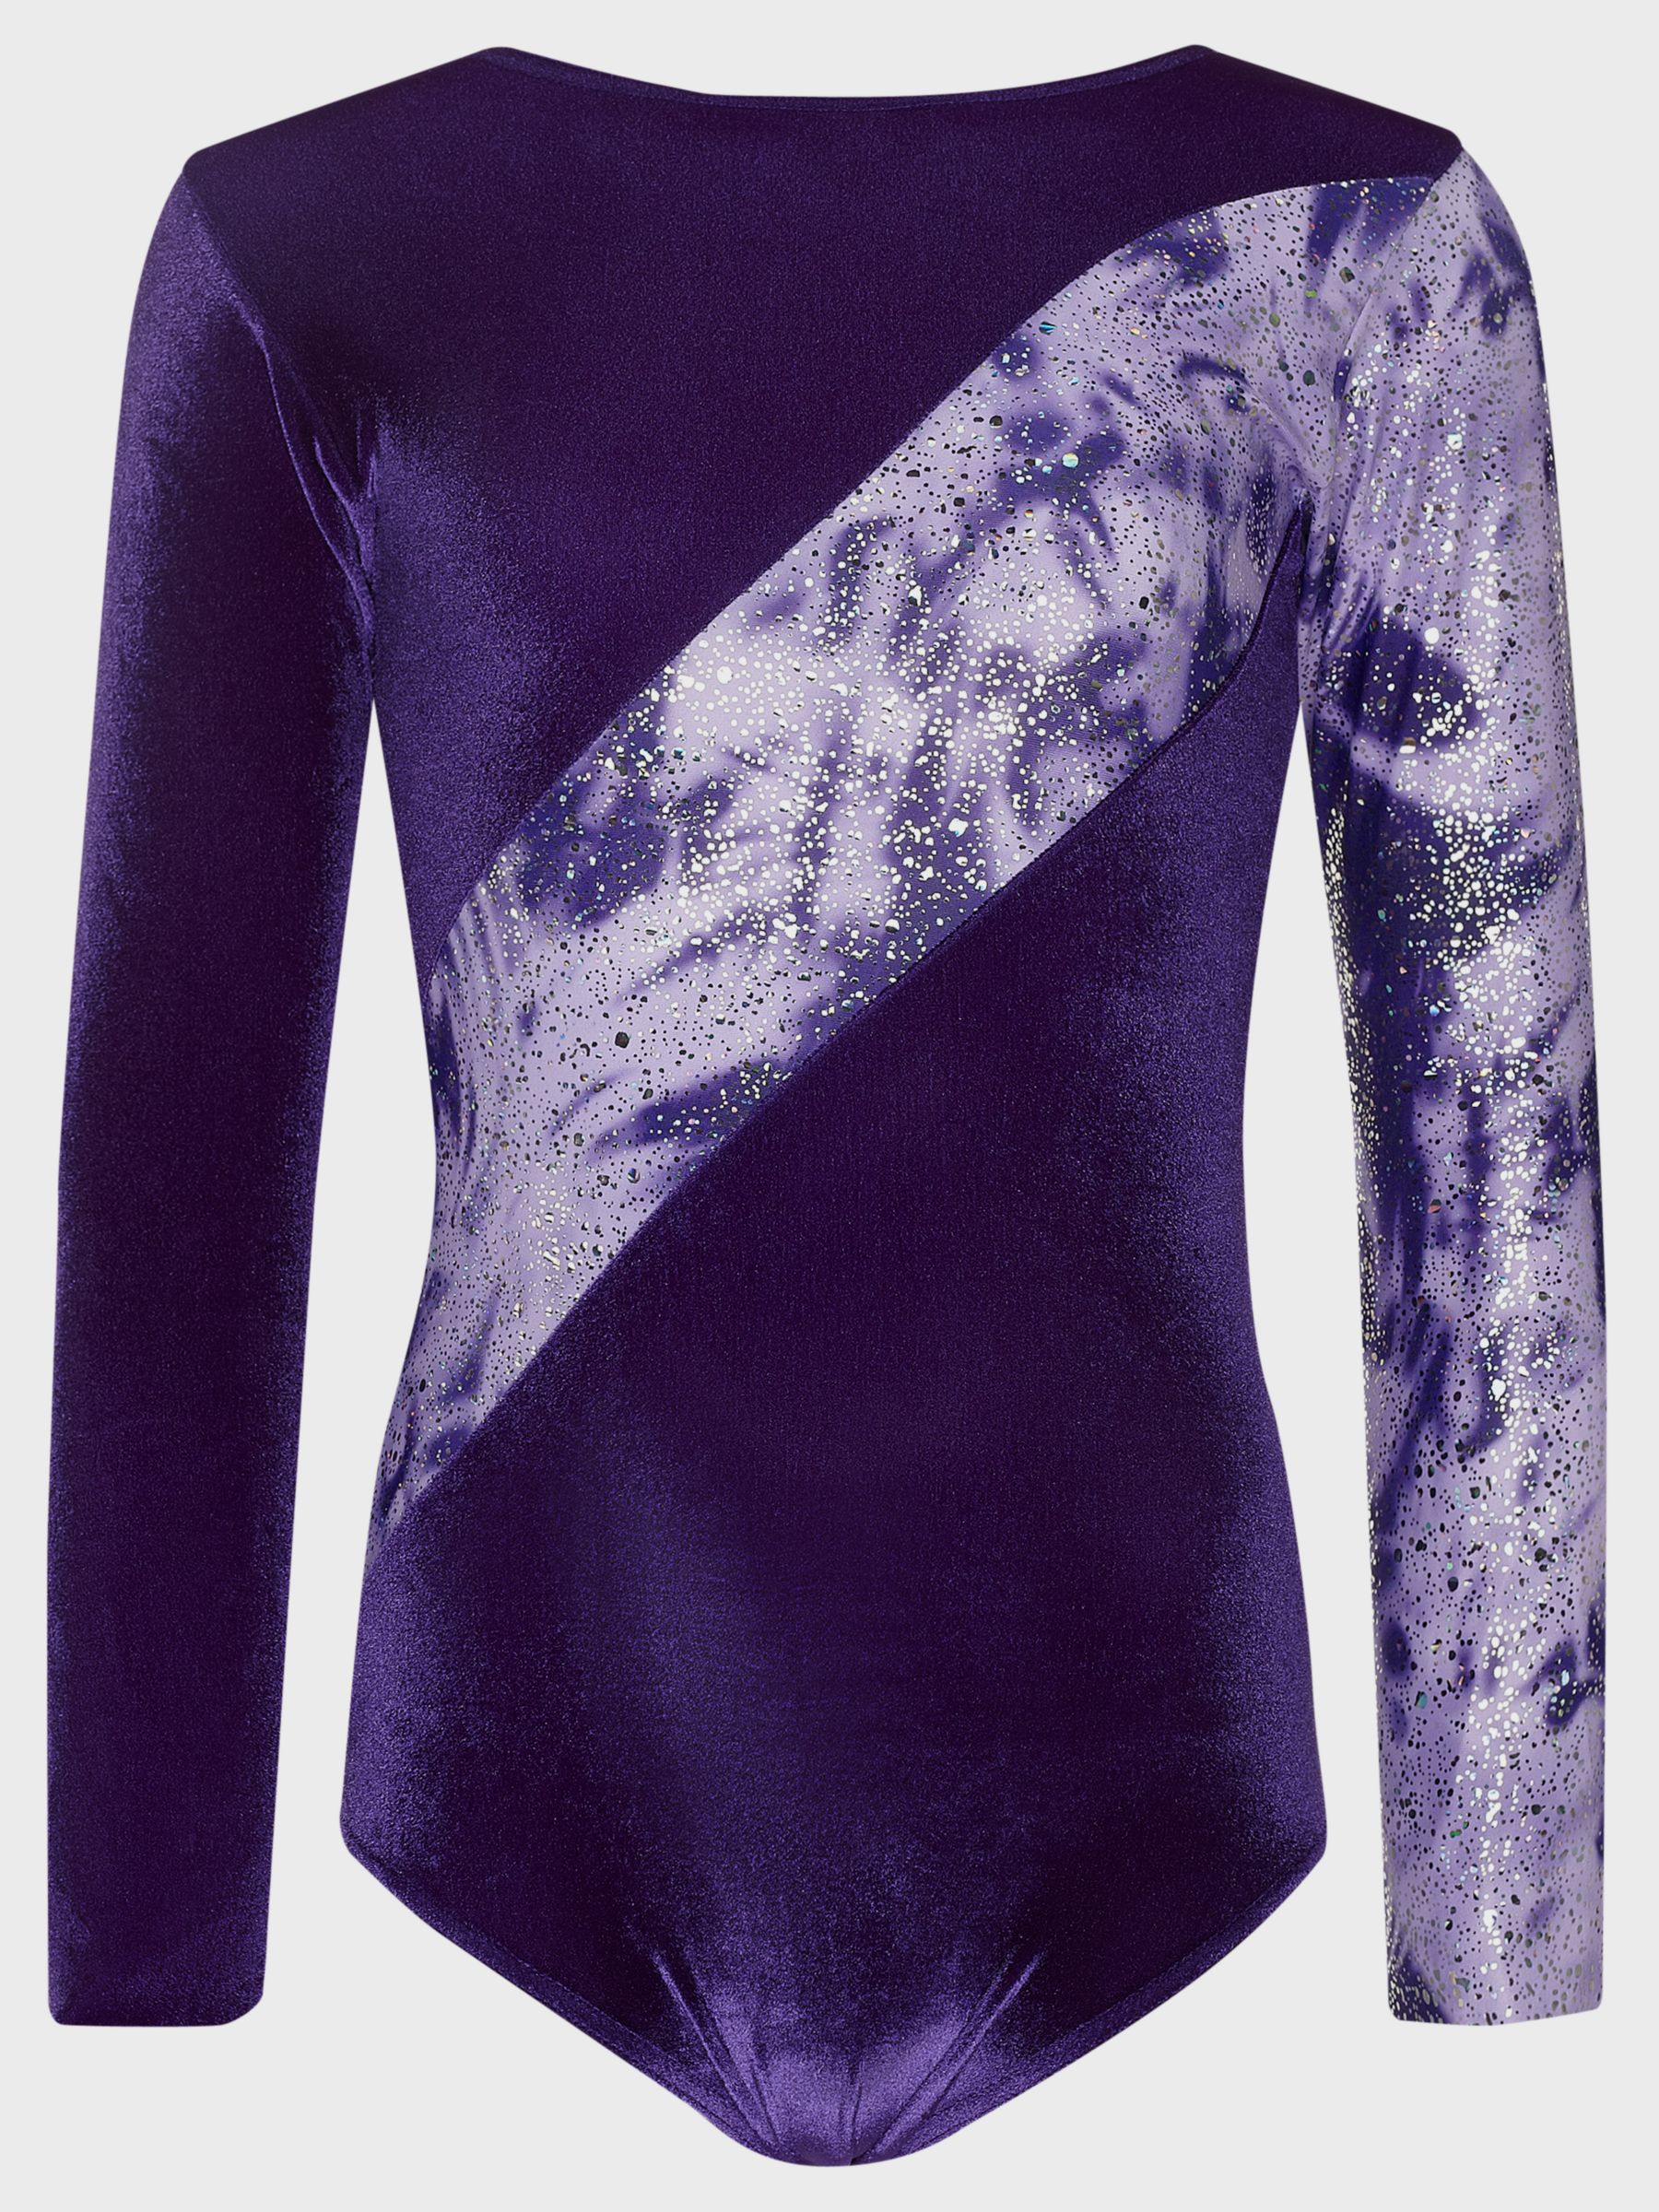 Tappers and Pointers Tappers and Pointers Shine Panel Gym Leotard, Purple/Lilac